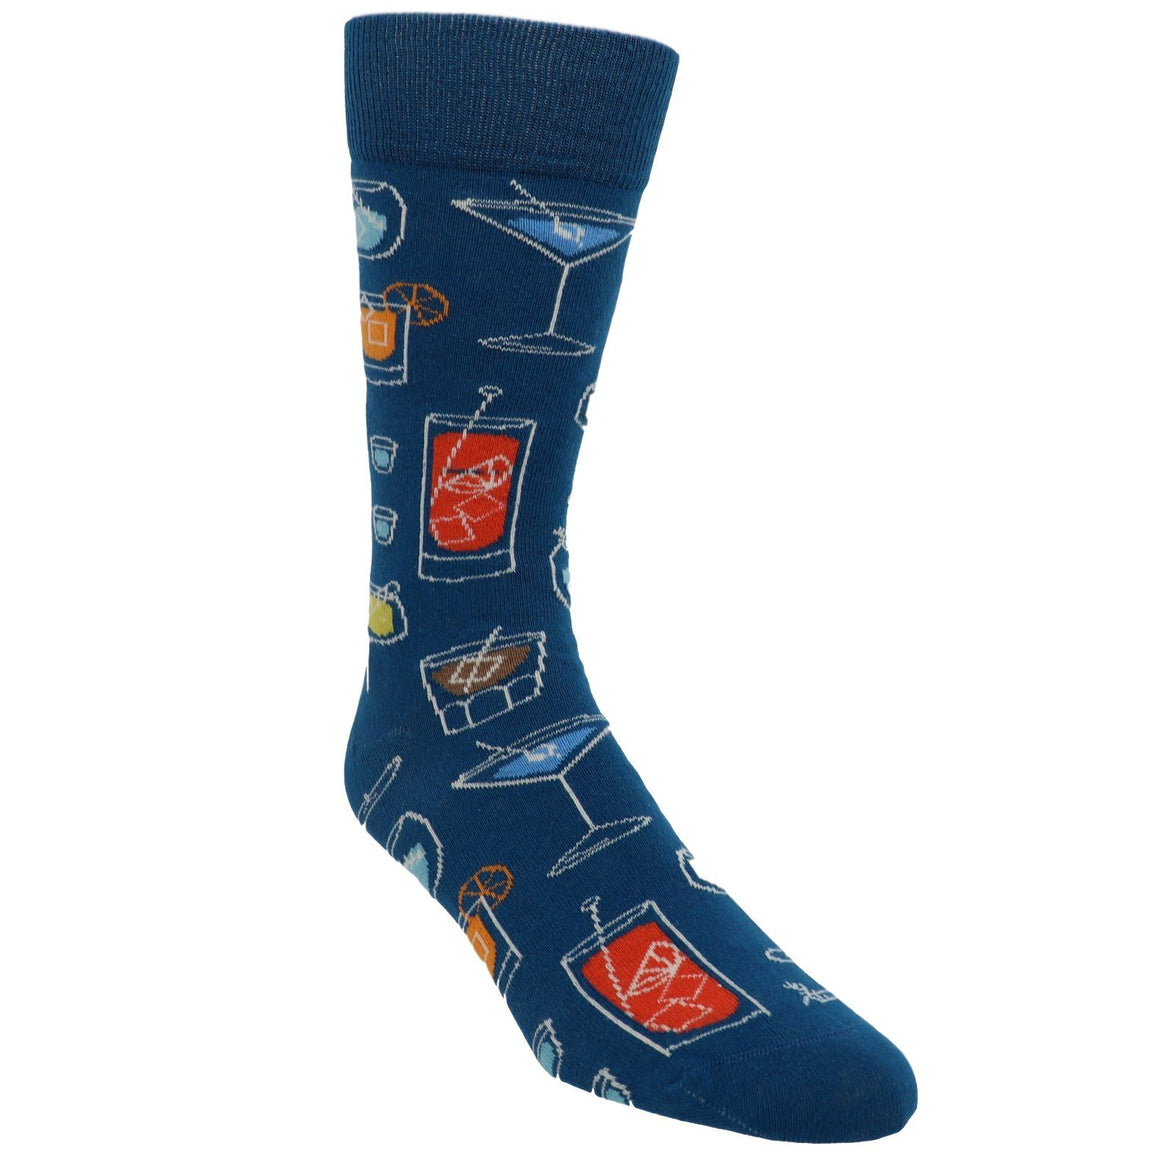 Socks - The Old Fashioned Unisex Socks By Funatic